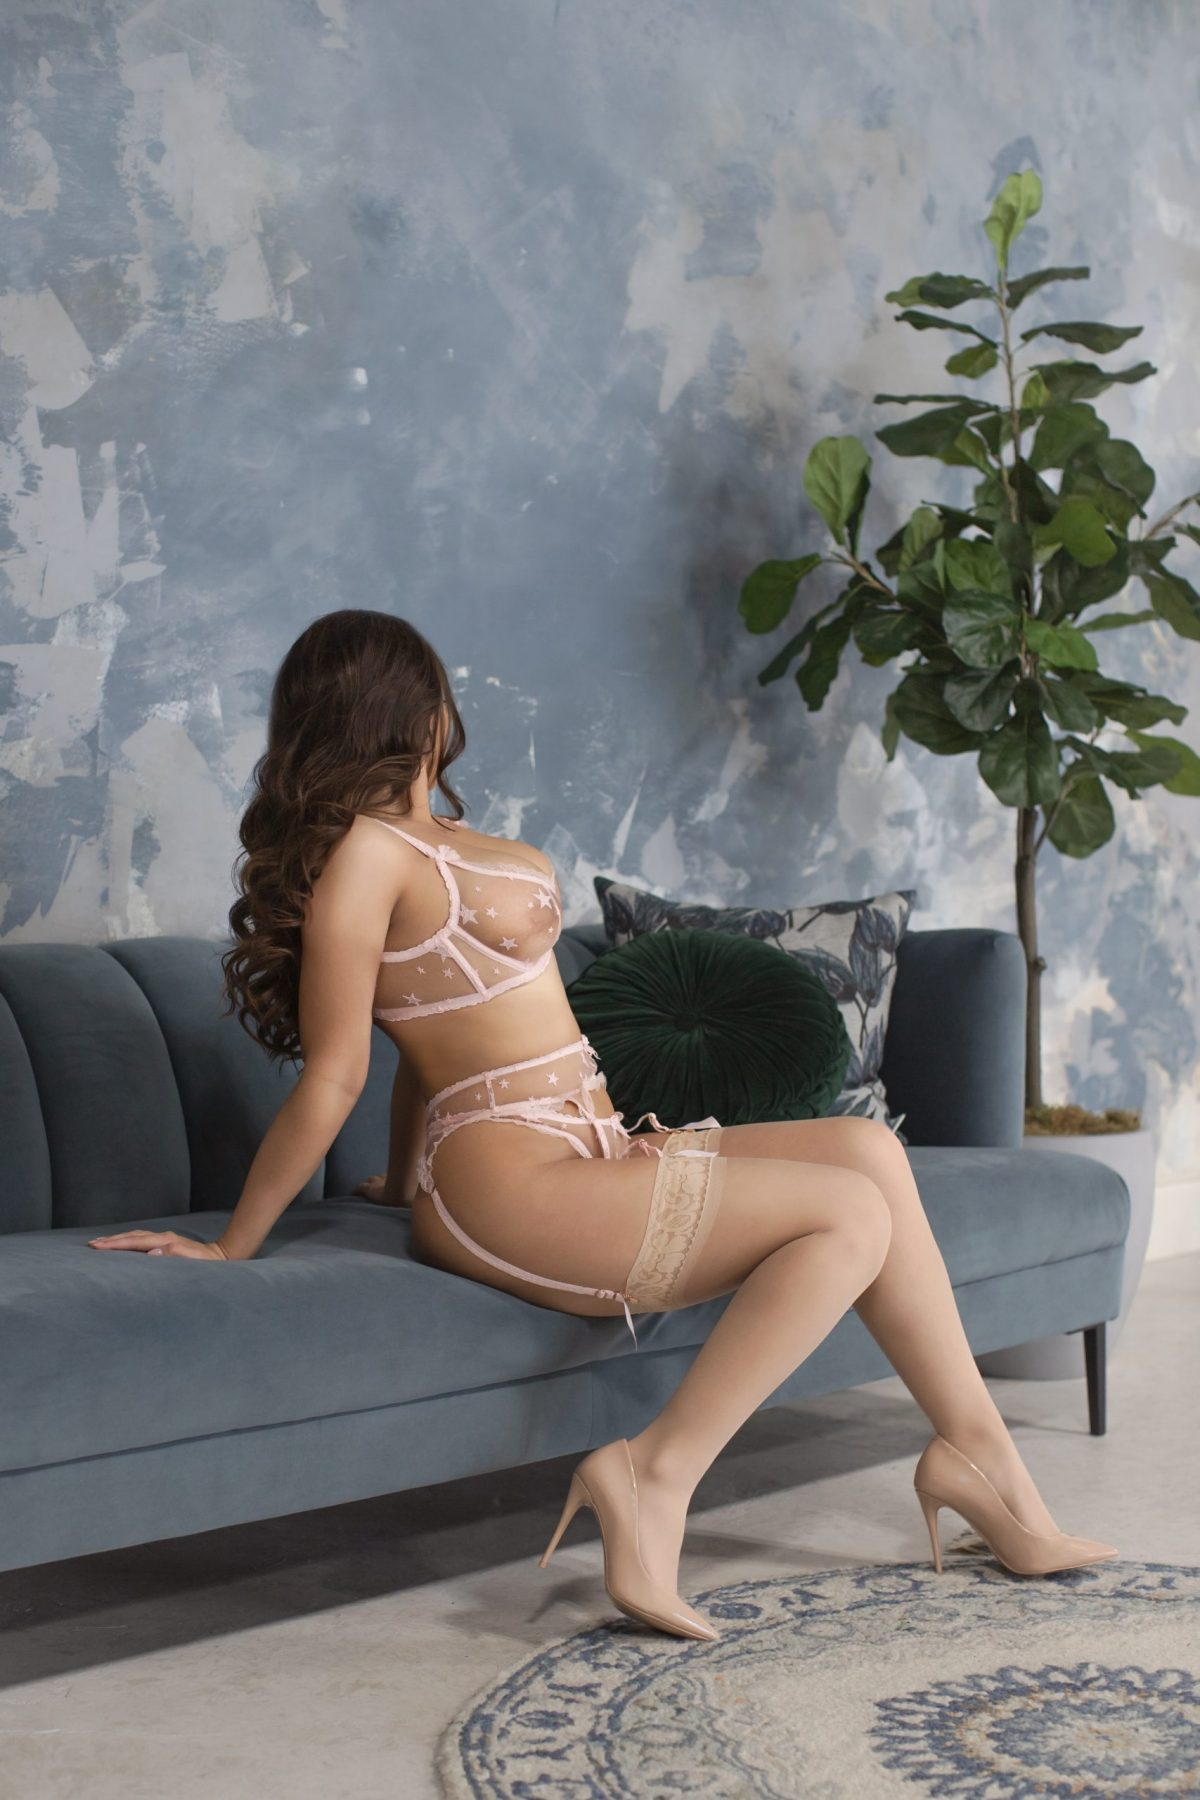 Toronto escorts companion upscale Noelle Interests Duo Disability-friendly Non-smoking Young Curvy Petite Breasts Natural Brunette European Tattoos None